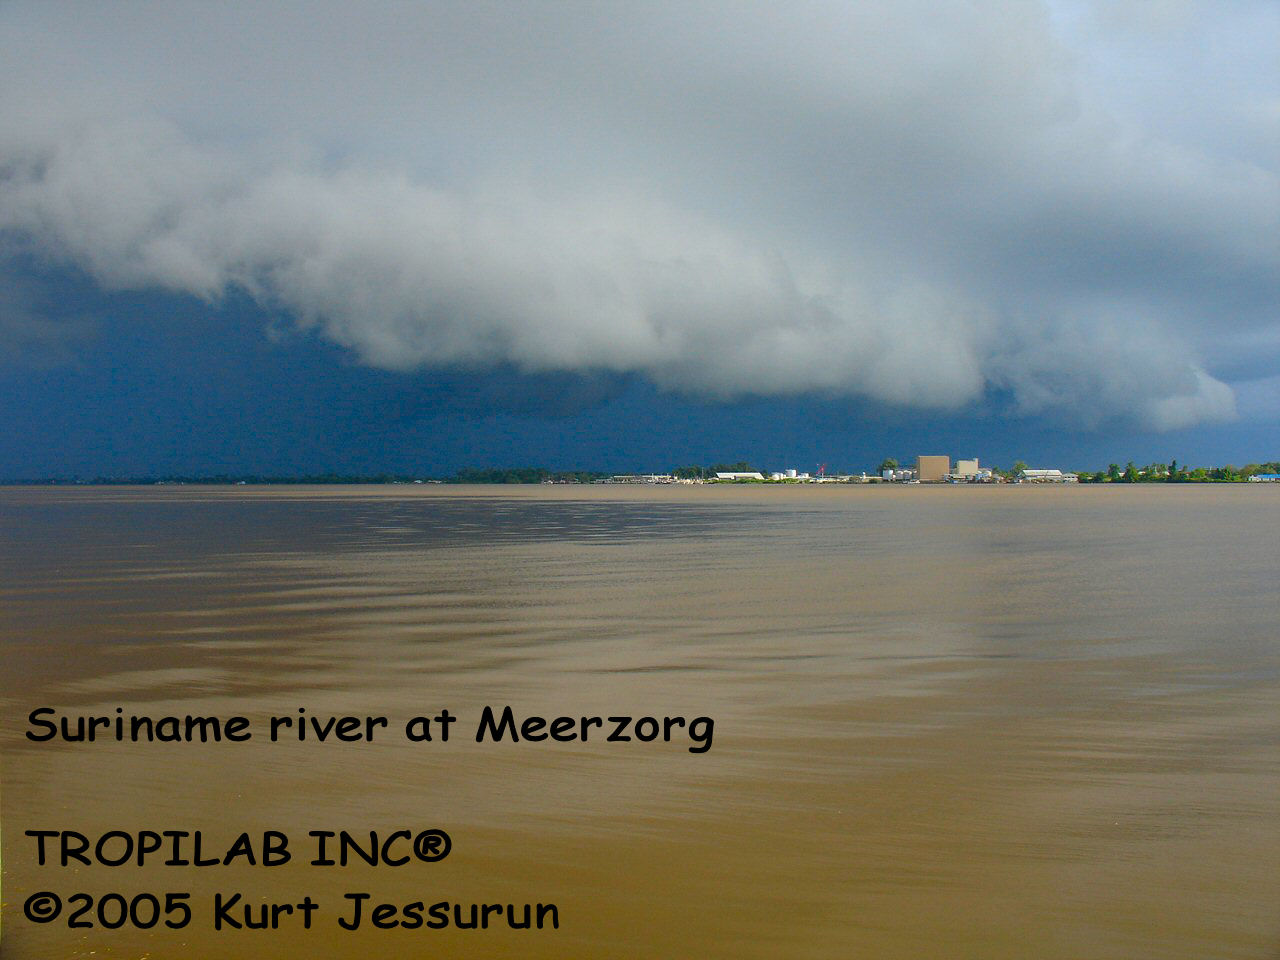 Suriname river at Meerzorg